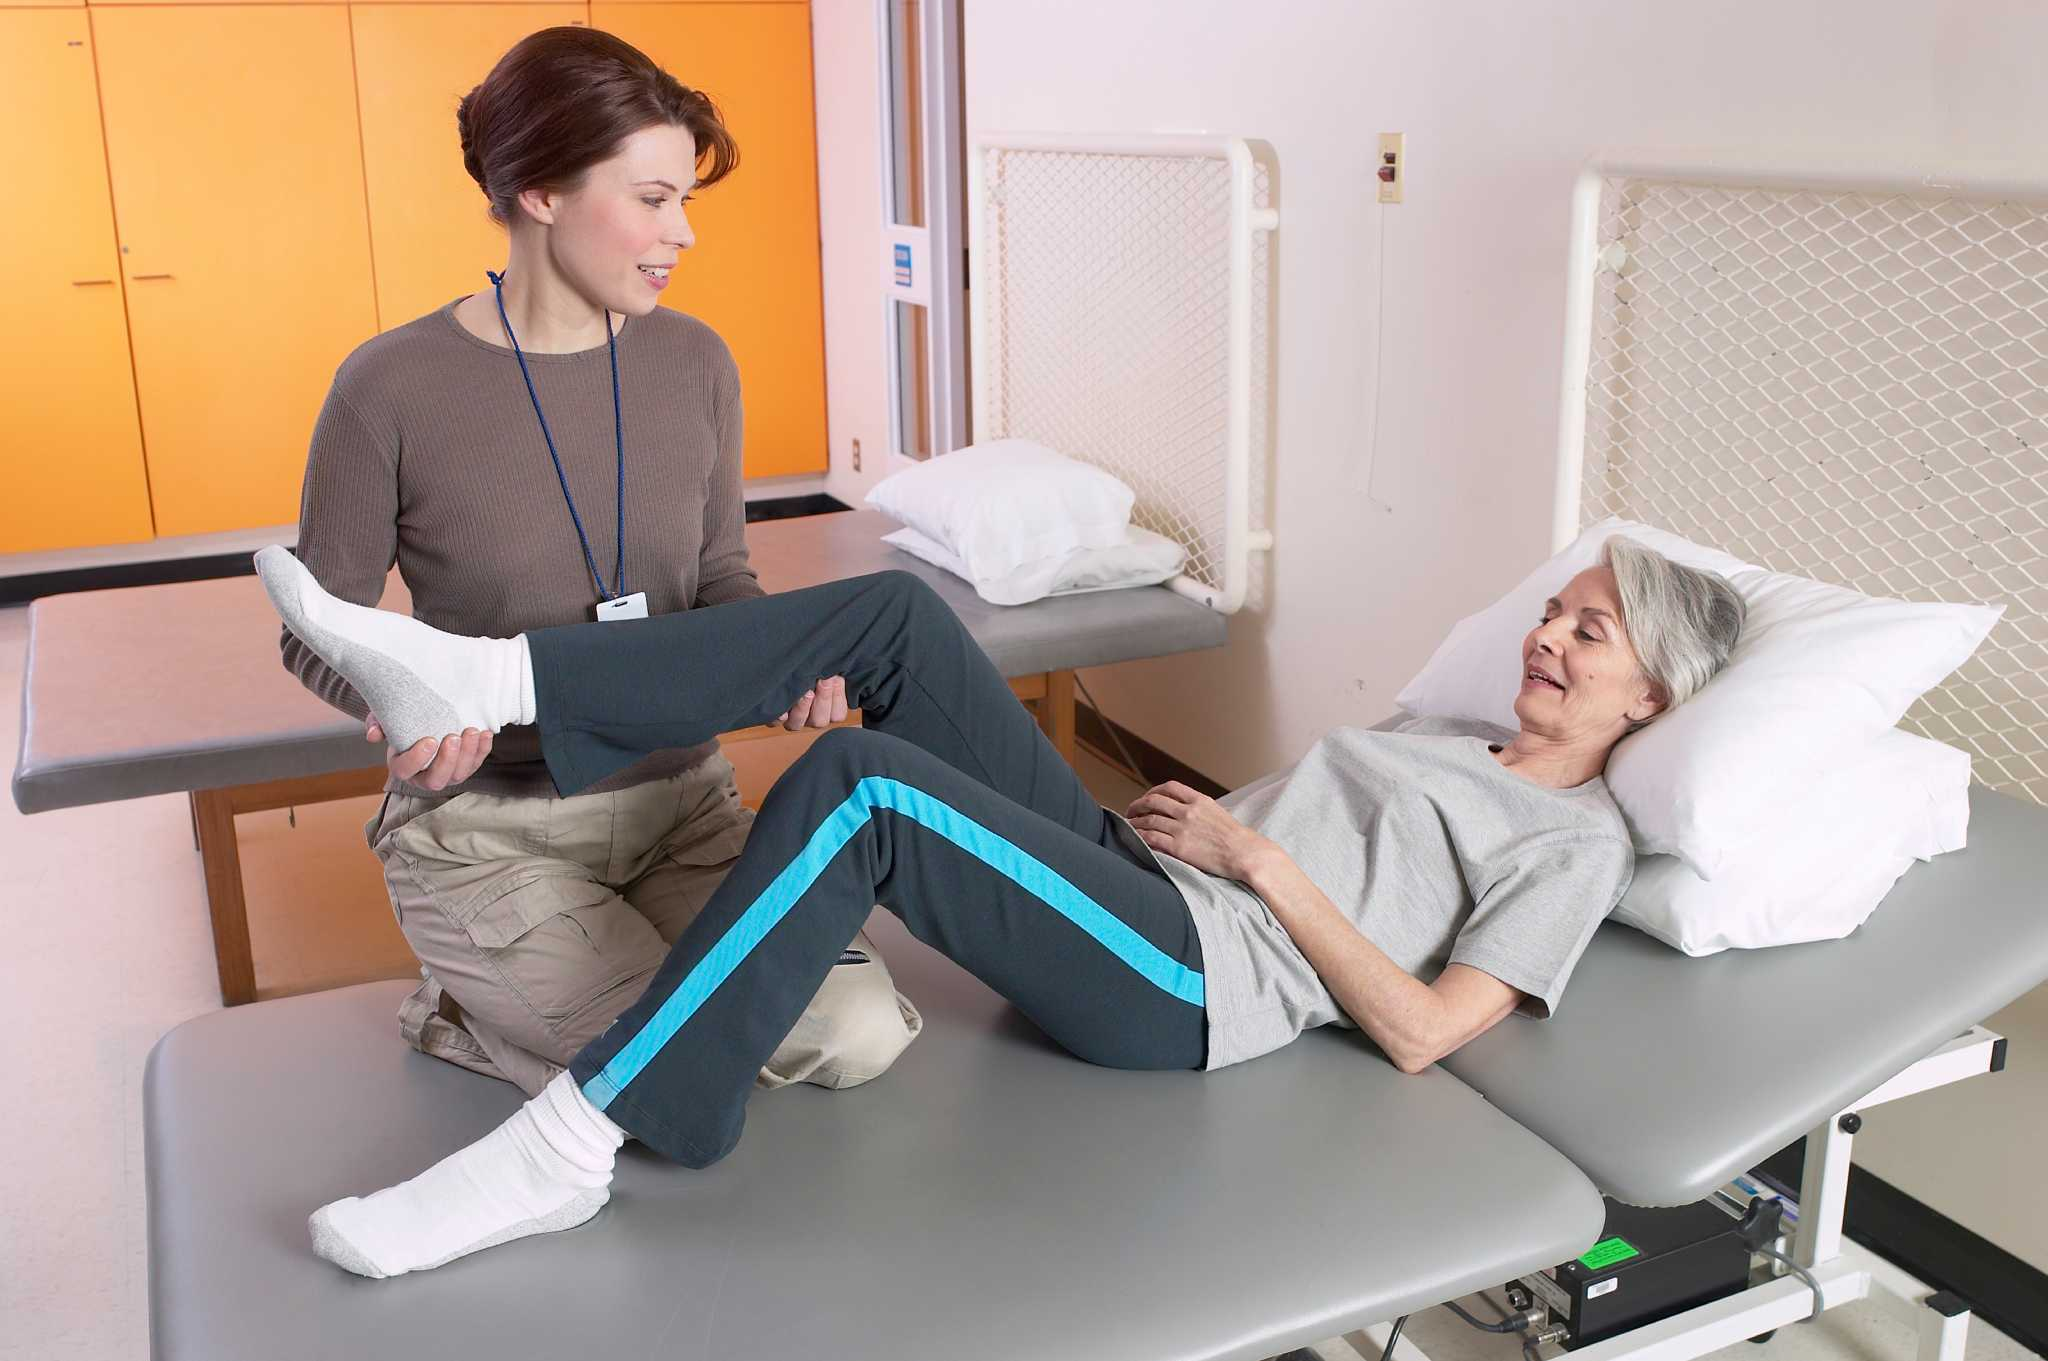 U.S. Physical Therapy buys majority interest in 25 clinics